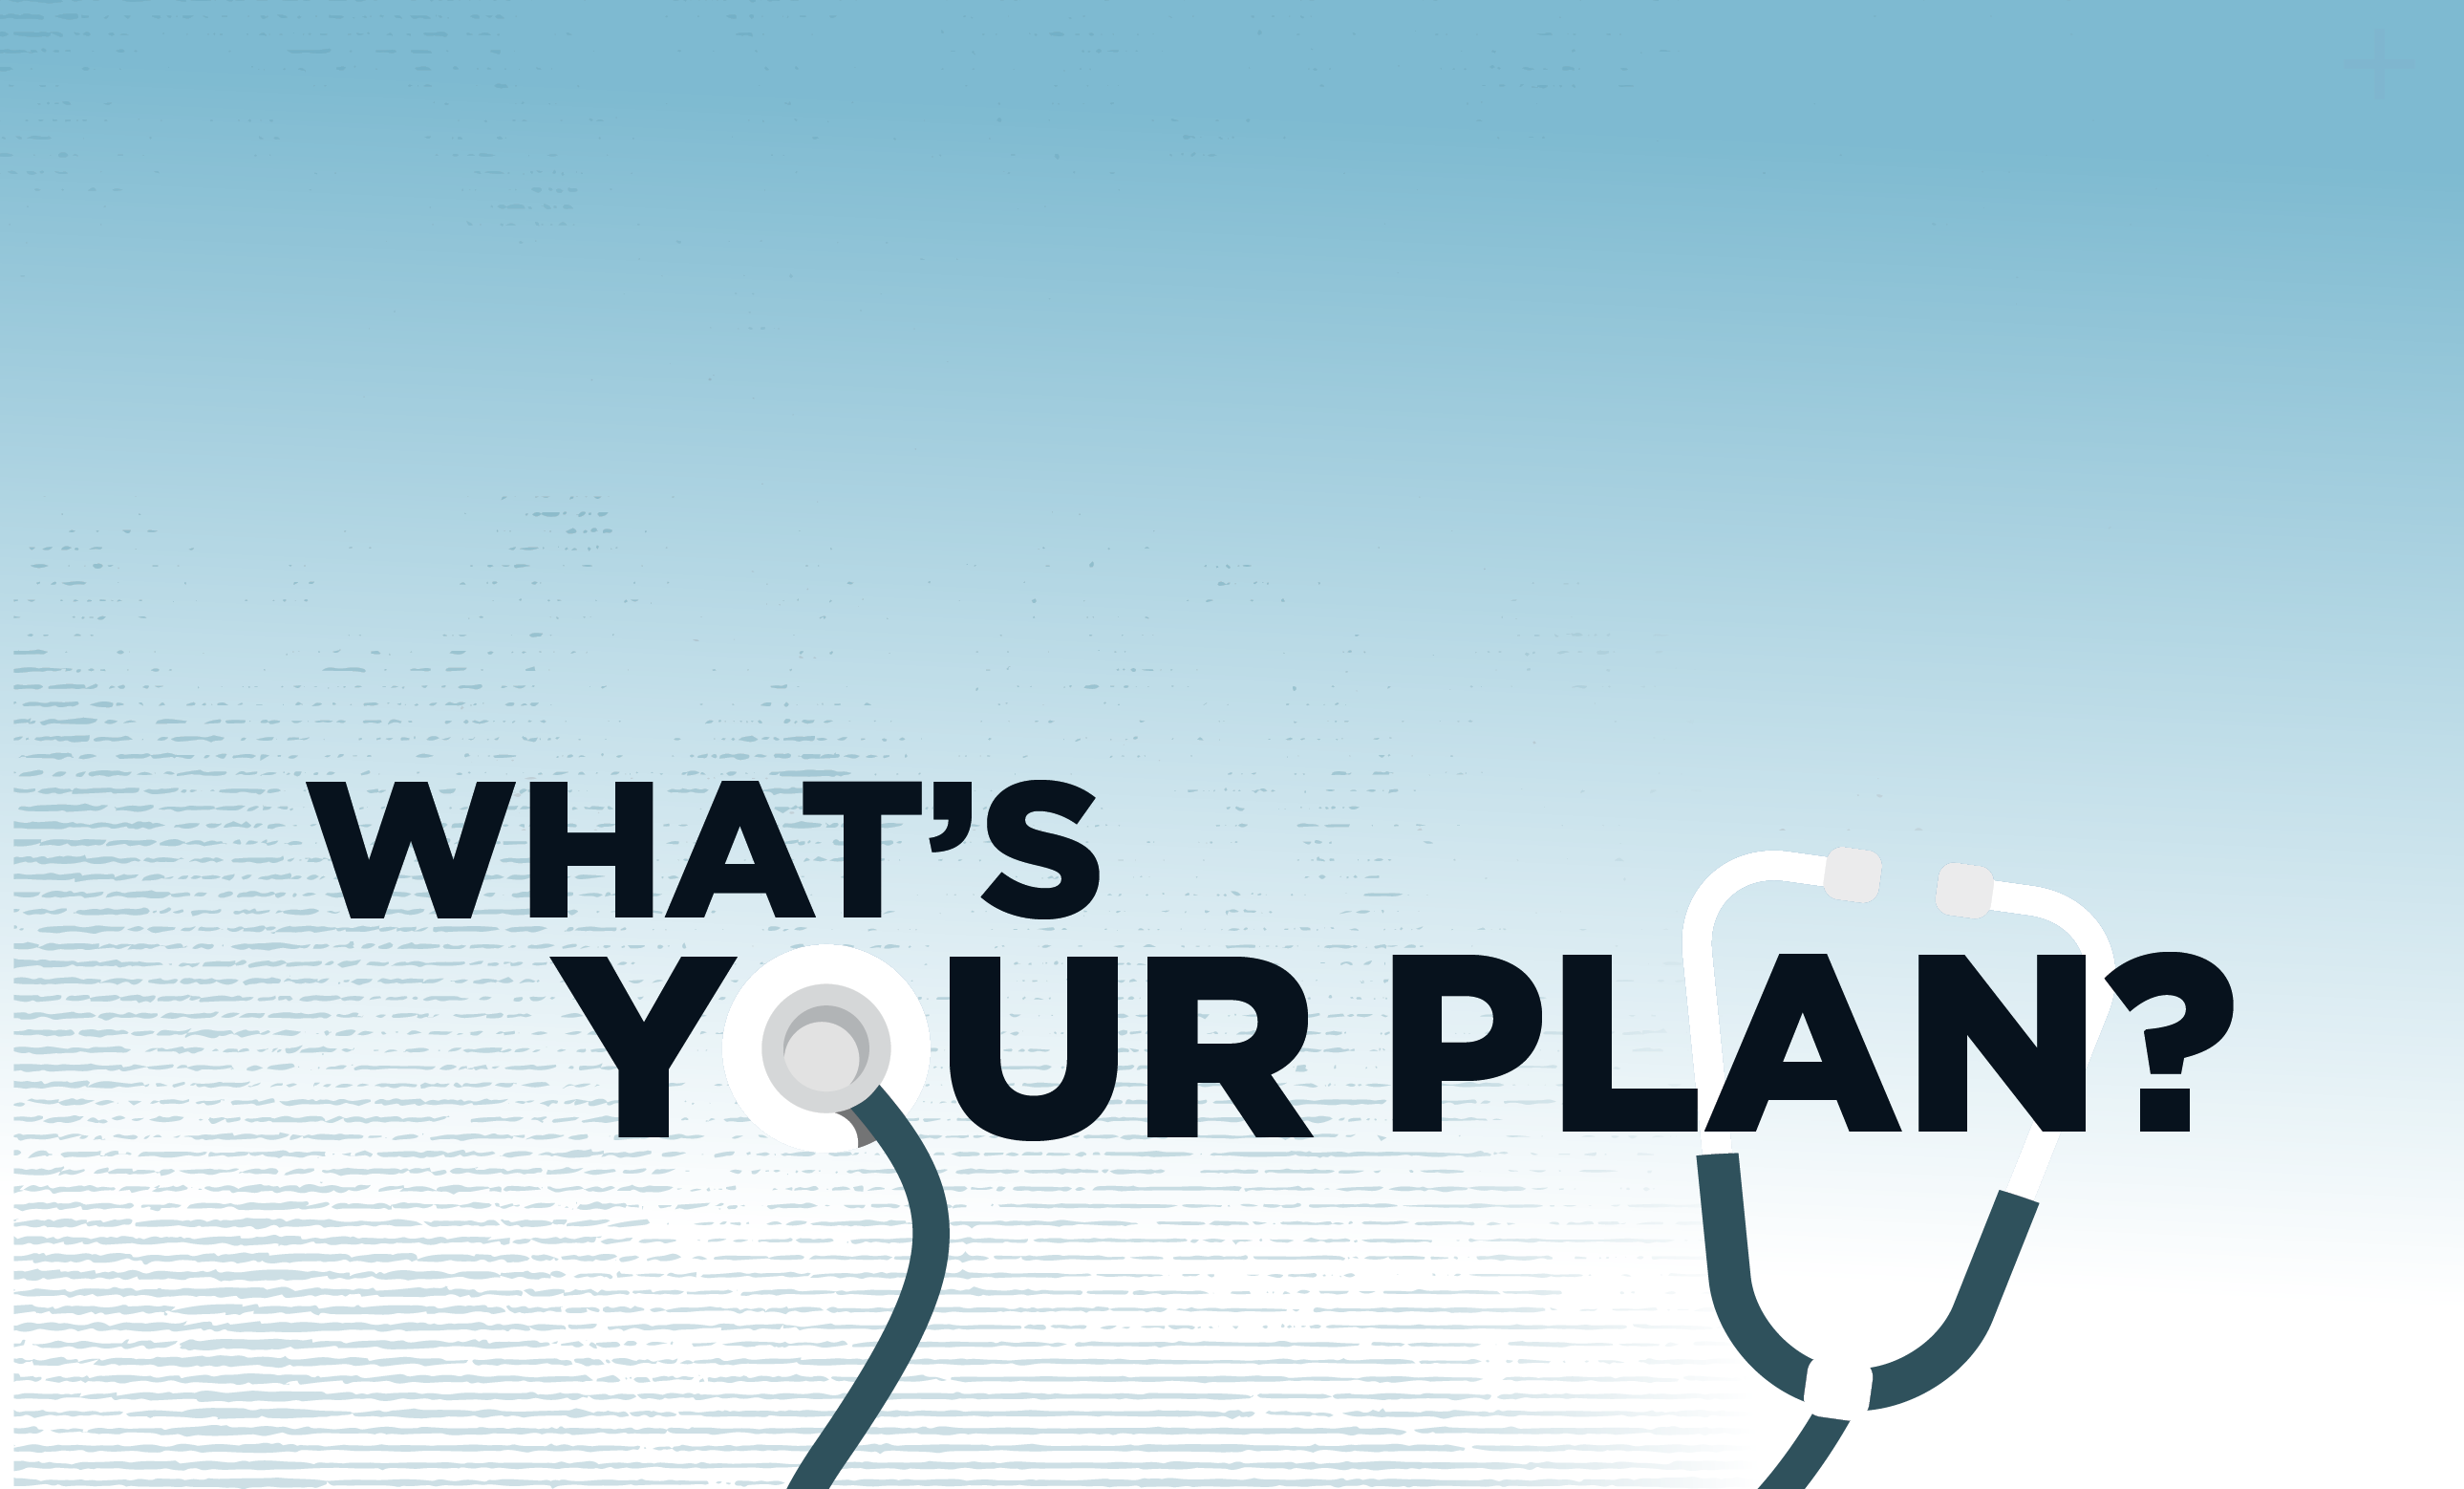 What's your plan? - Offering health care benefits helps recruit and retain top talent